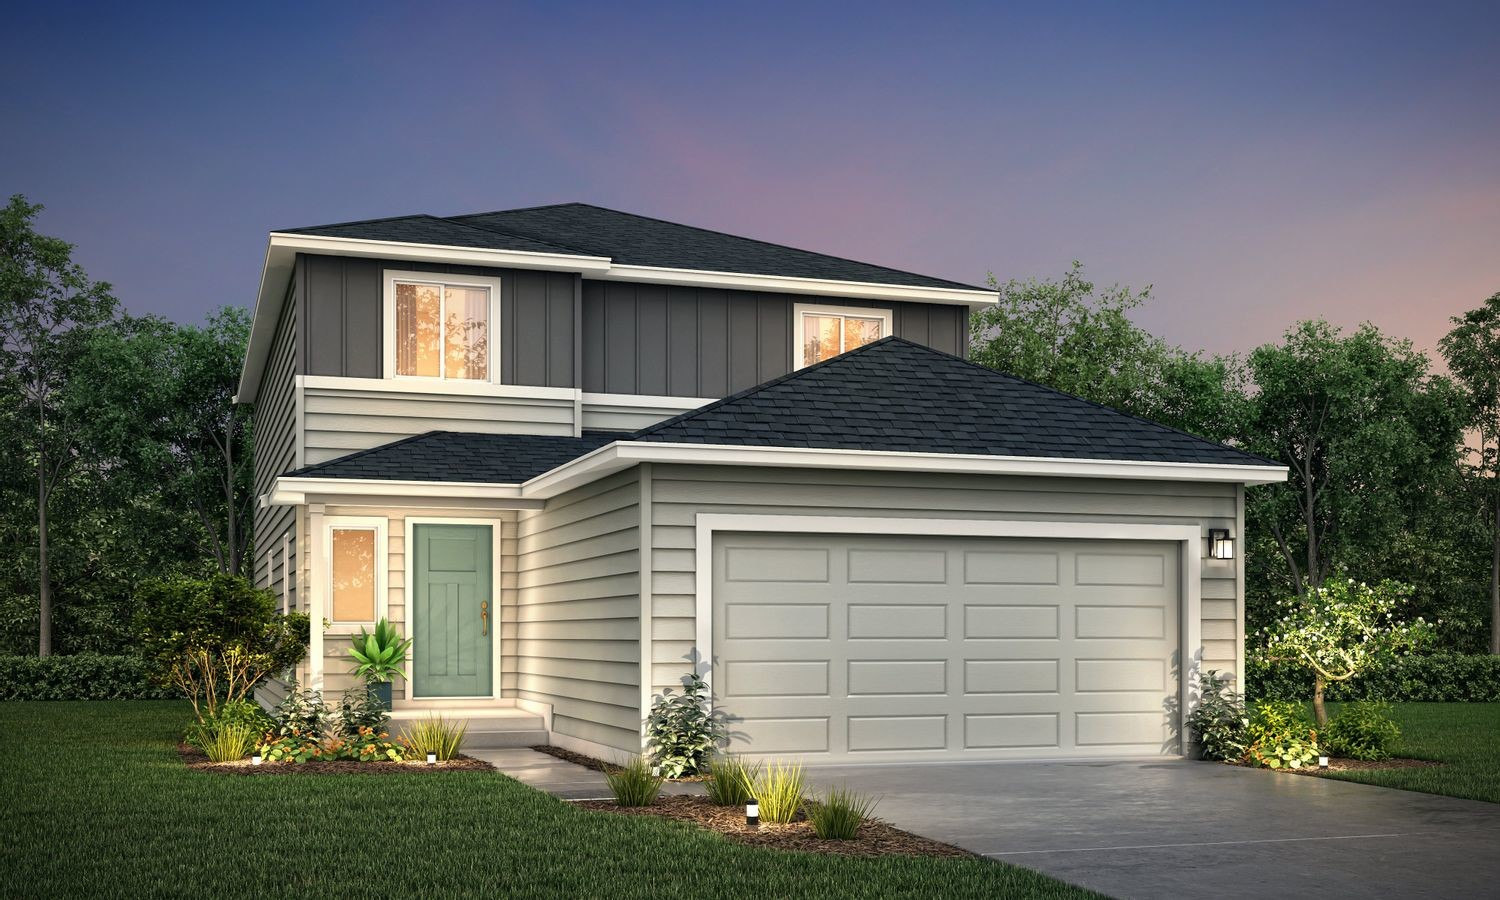 Move In Ready New Home In Preserve at Tumwater Place Community